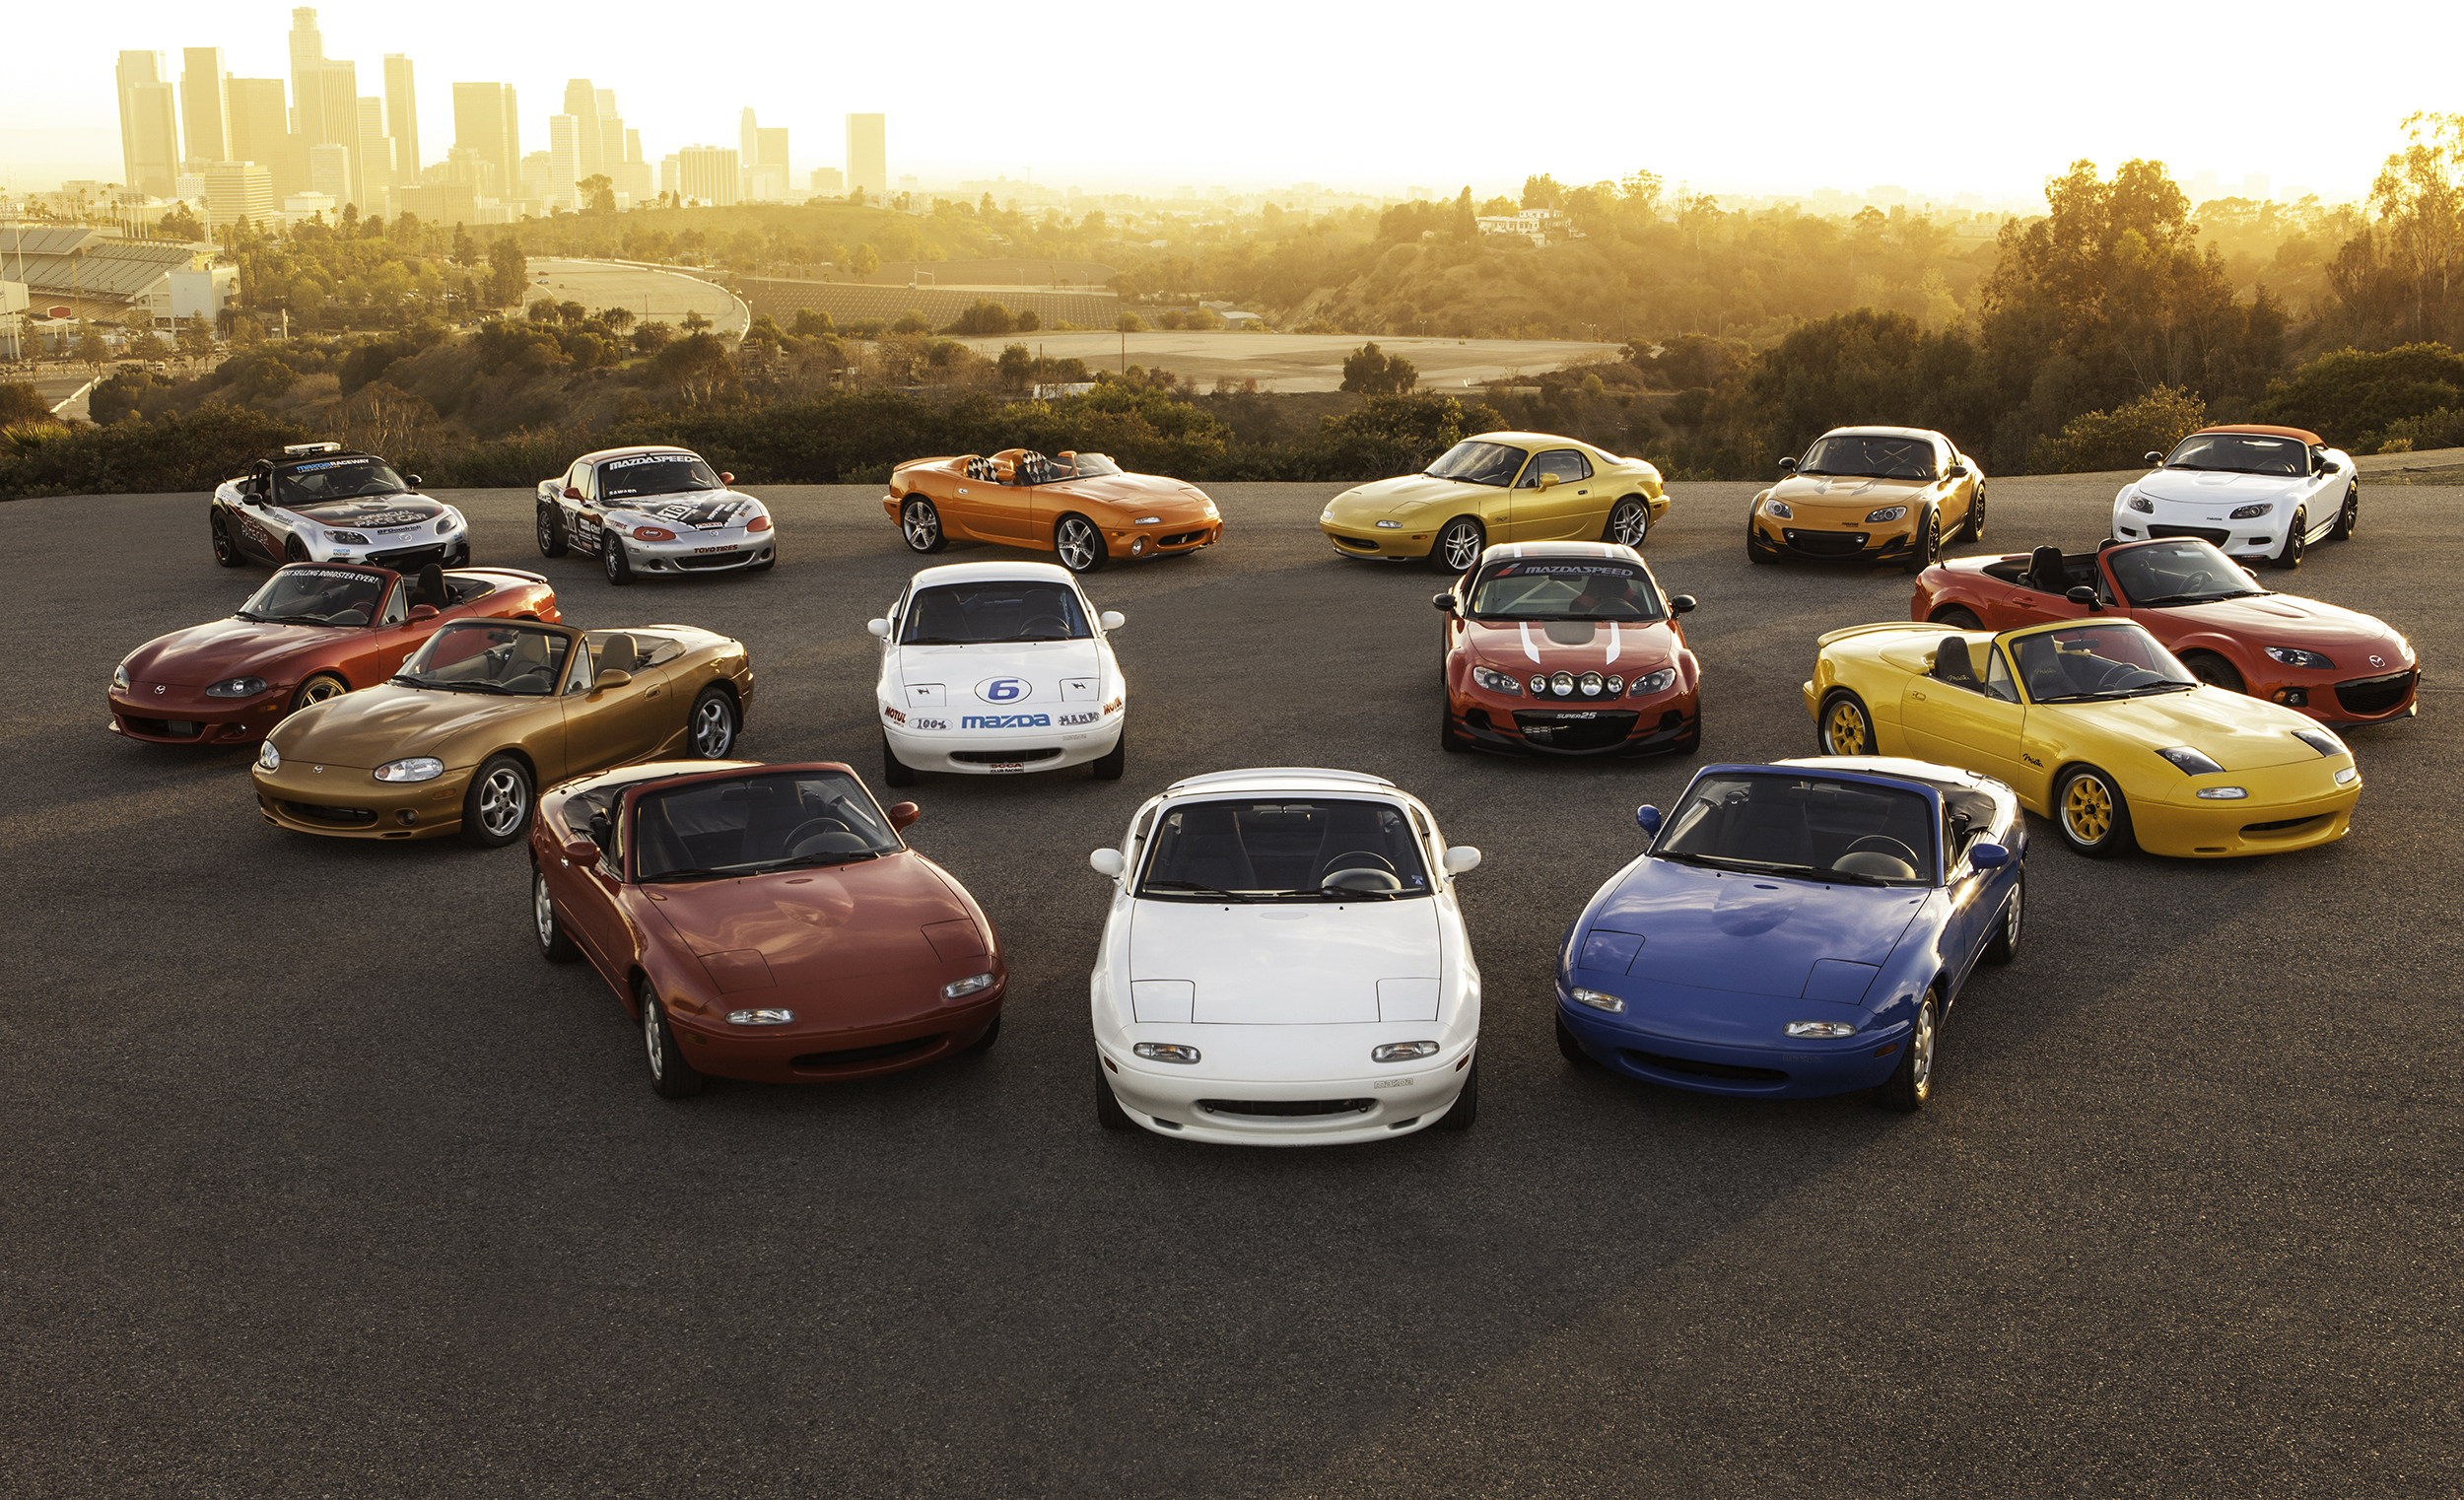 Mazda MX-5 Concept and Production Cars in Los Angeles